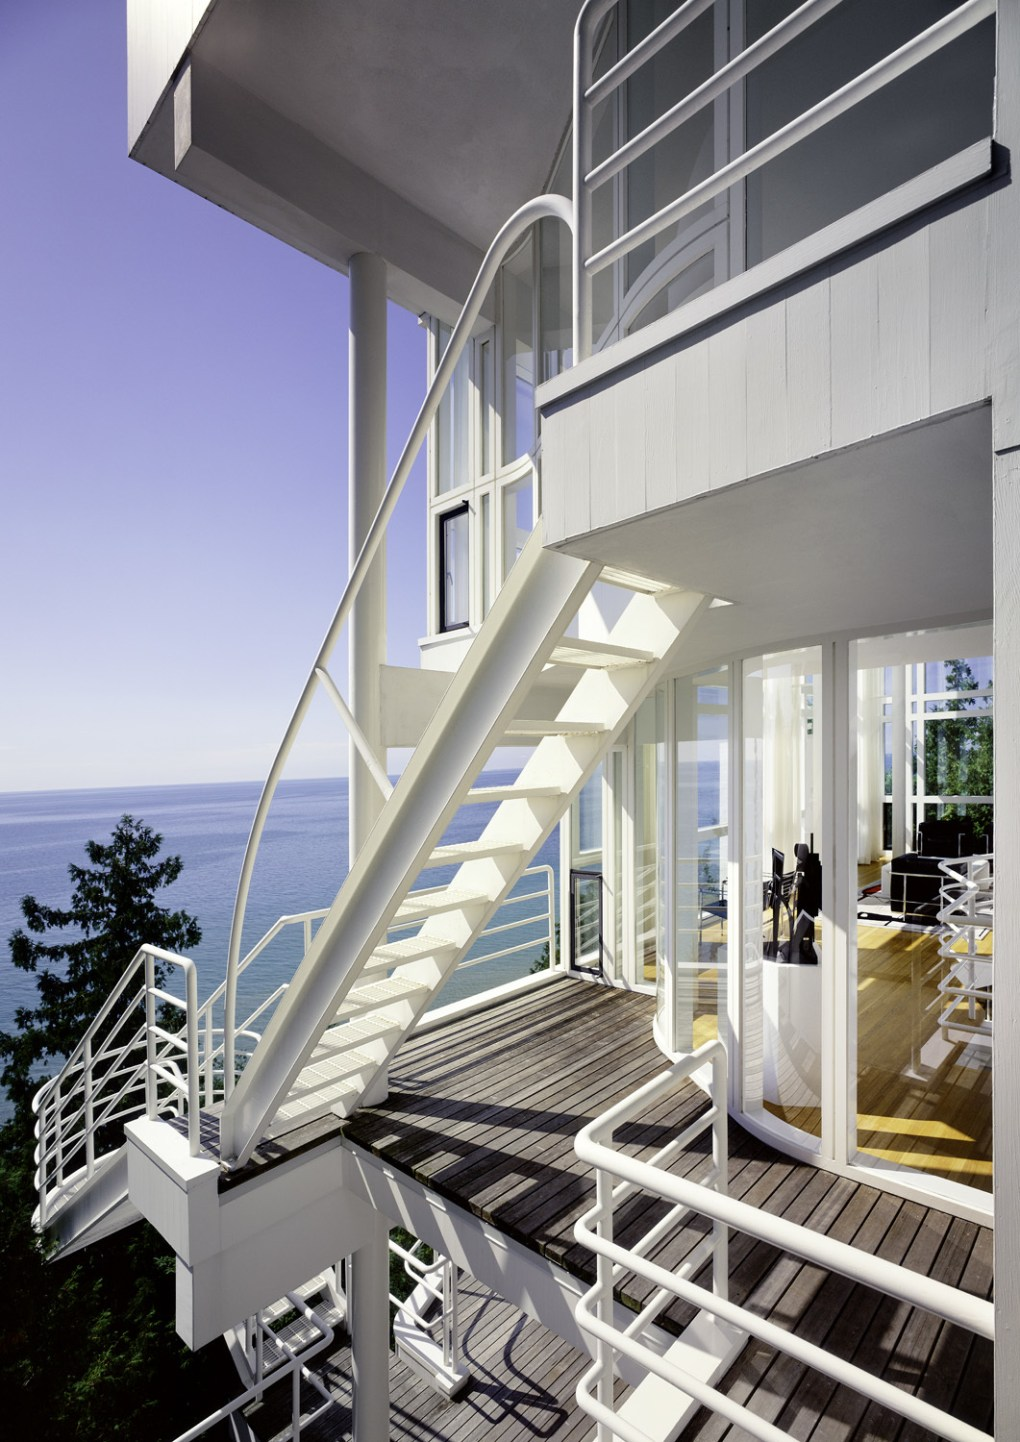 douglas-house-richard-meier-02